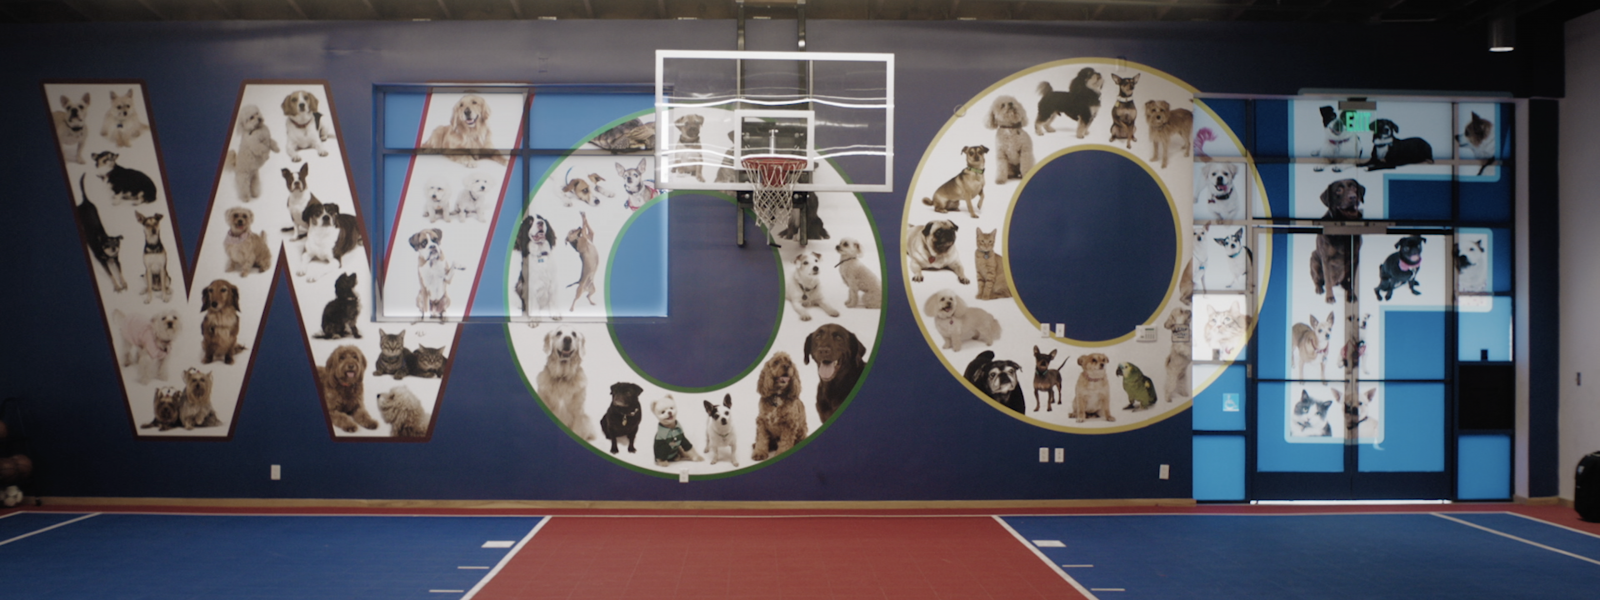 The letters W O O and F appear behind a basketball hoop in a gymnasium. Within each letter are pictures of pets.